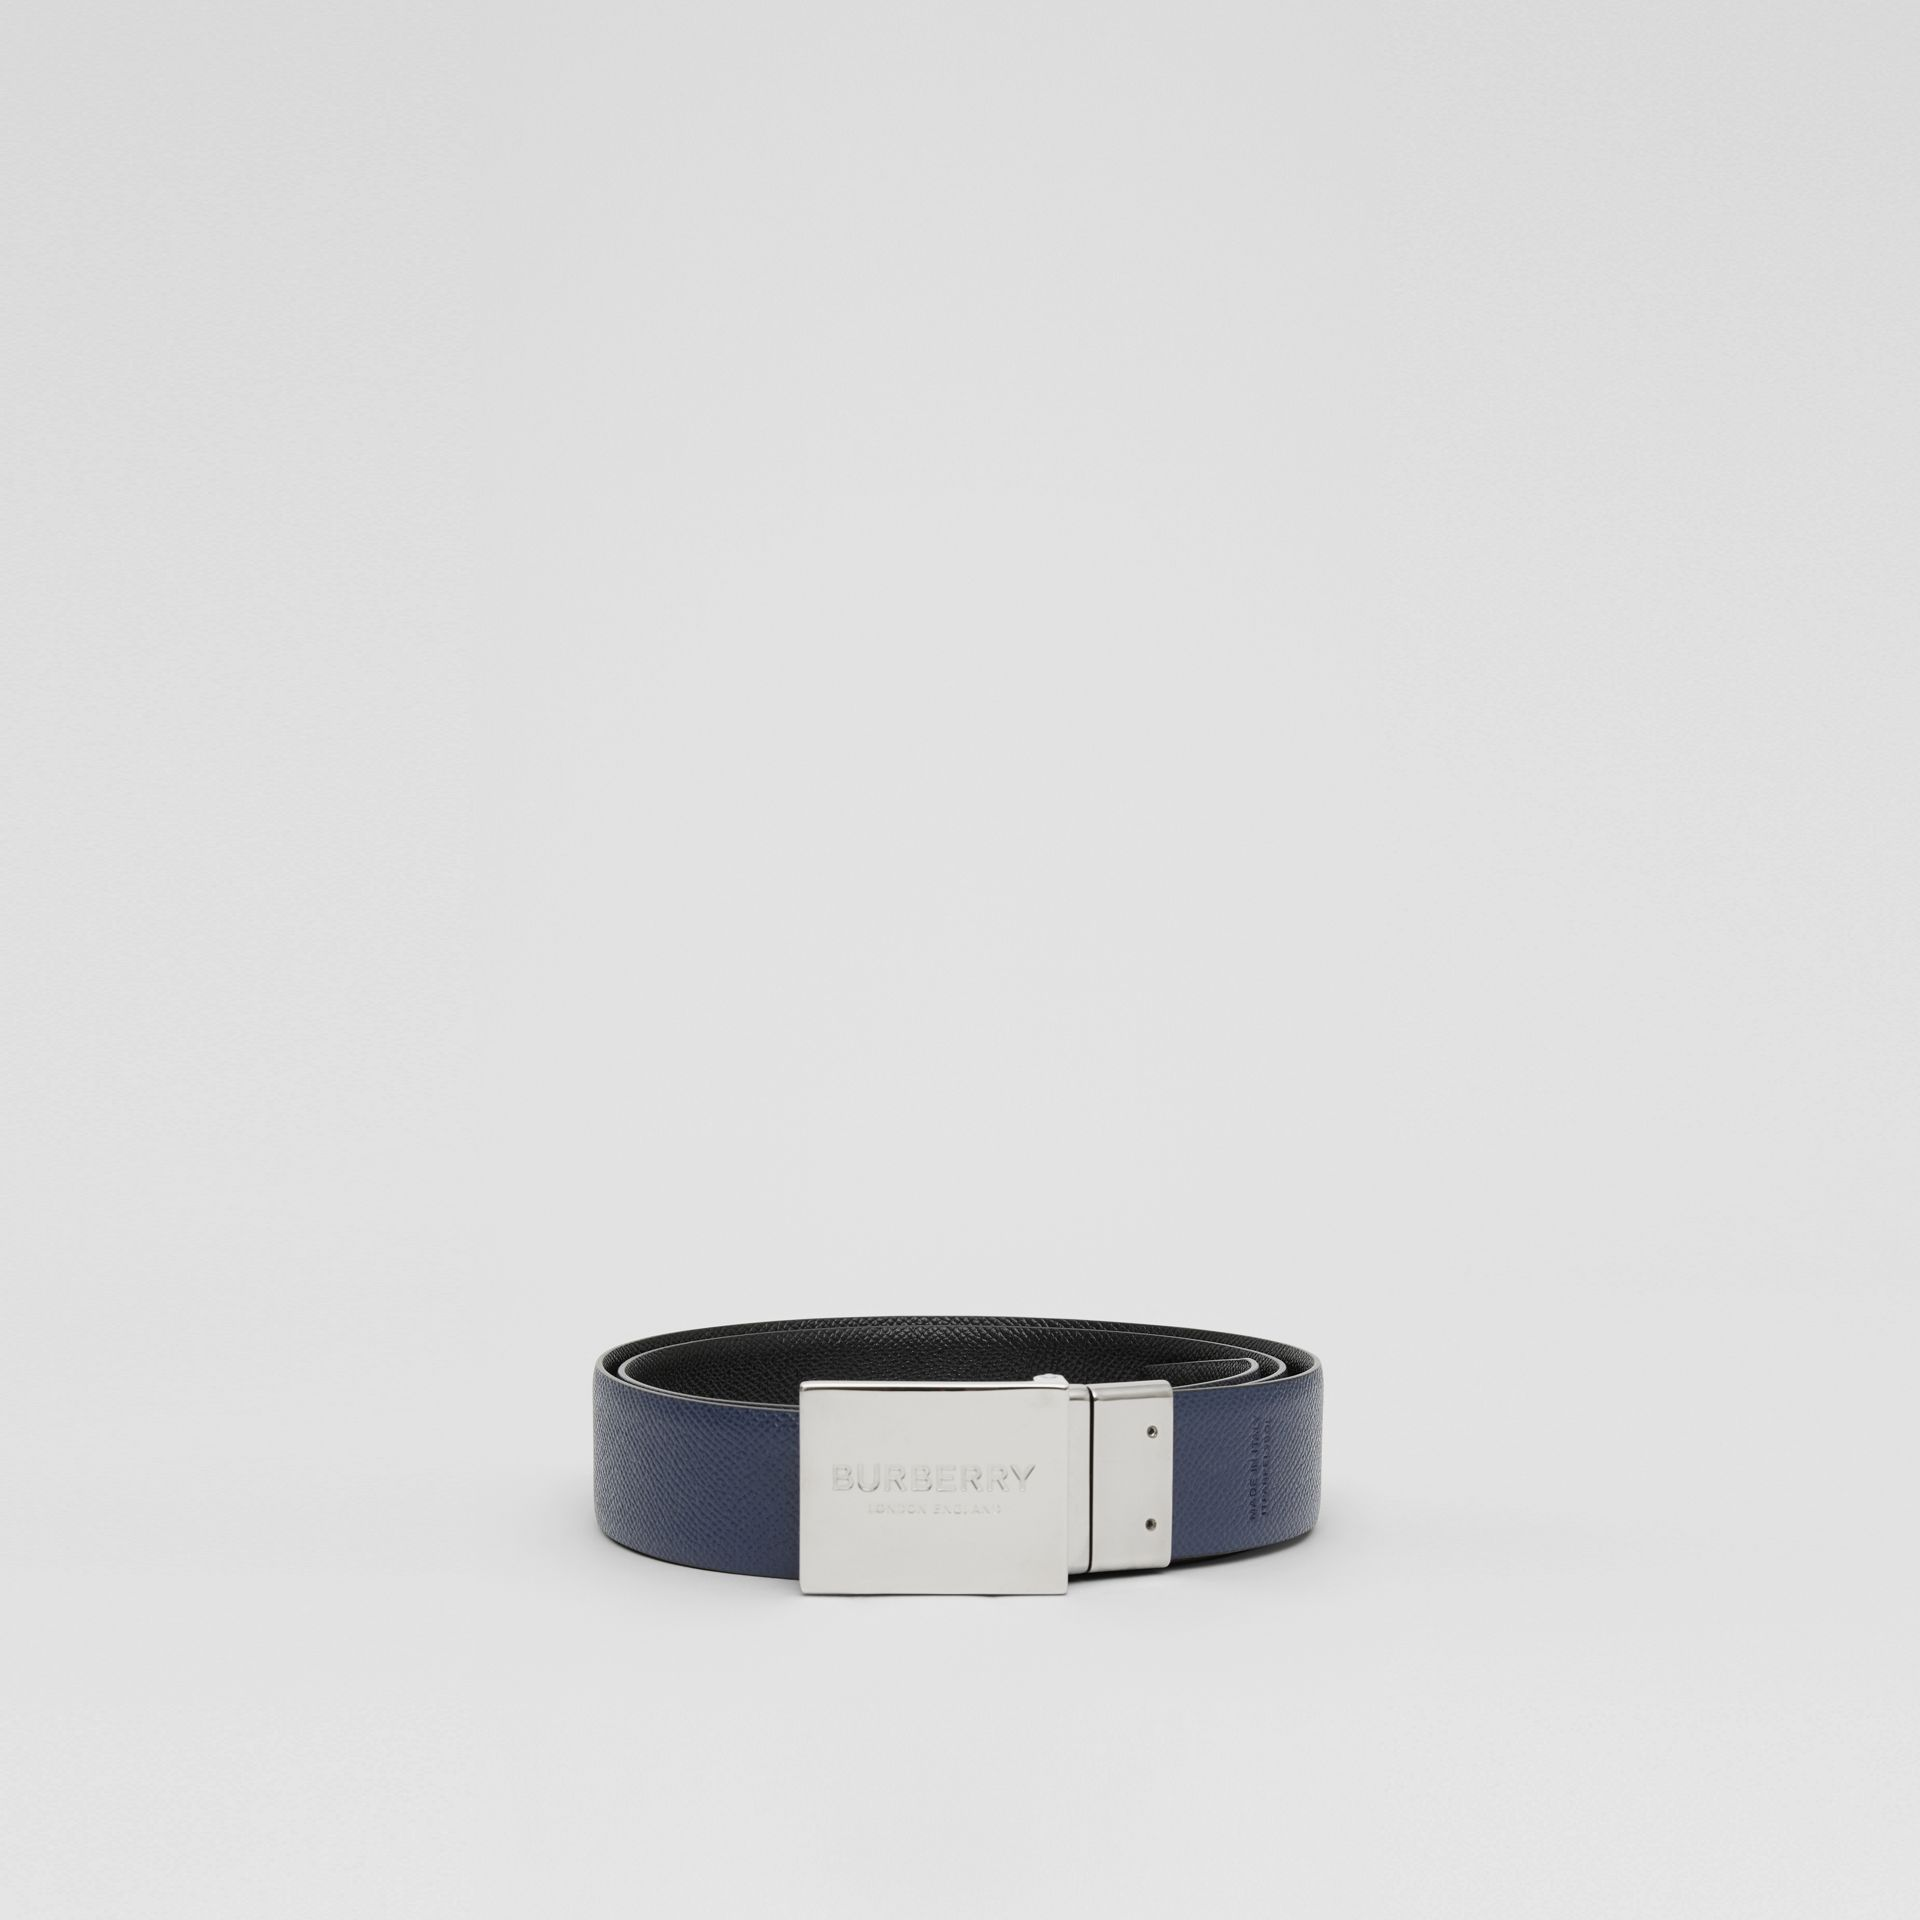 Reversible Plaque Buckle Grainy Leather Belt in Black/navy - Men | Burberry - gallery image 6